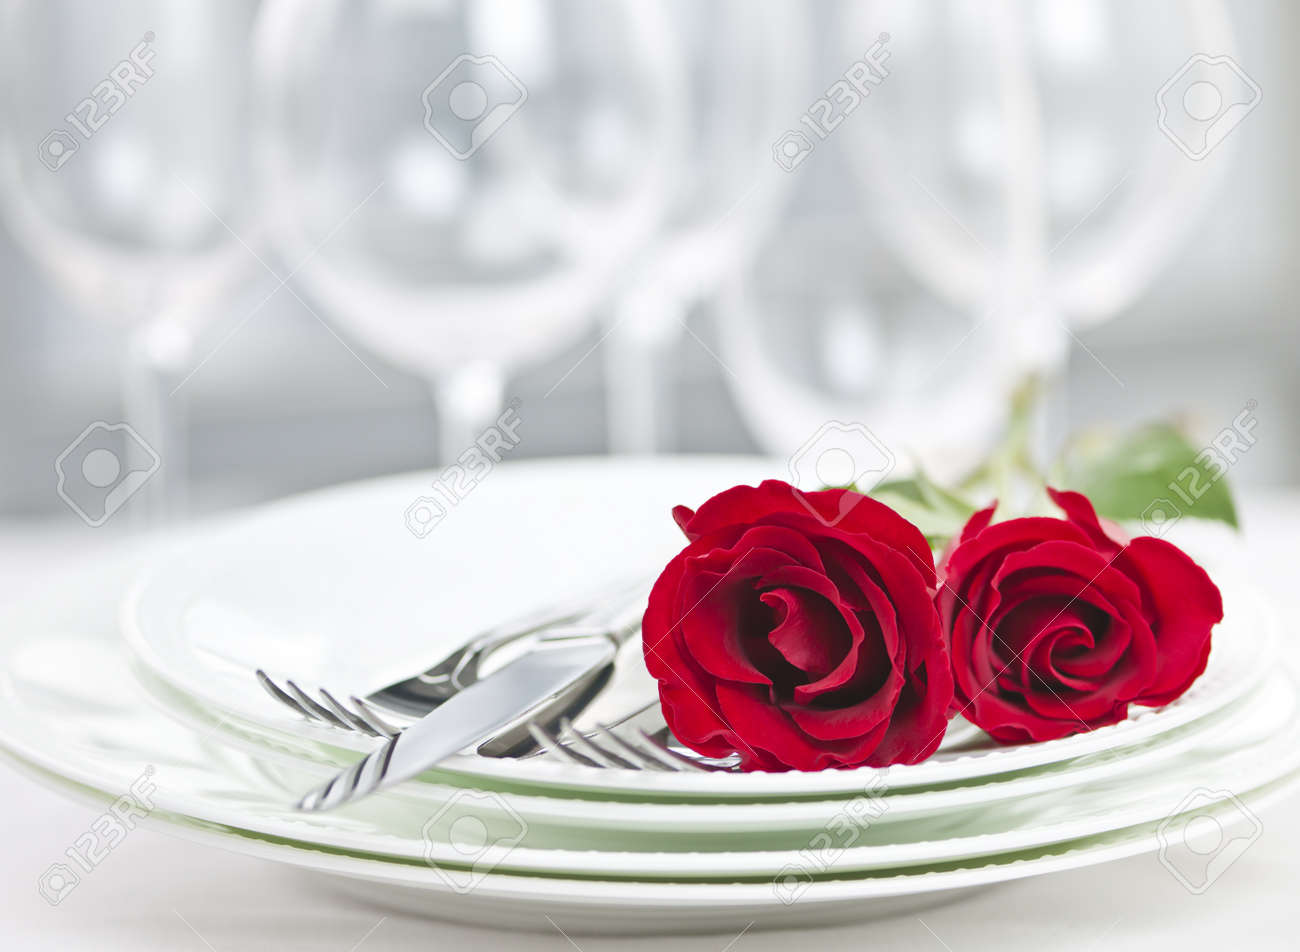 How to set a romantic dinner table for two - Romantic Restaurant Table Setting For Two With Roses Plates And Cutlery Stock Photo 21849983